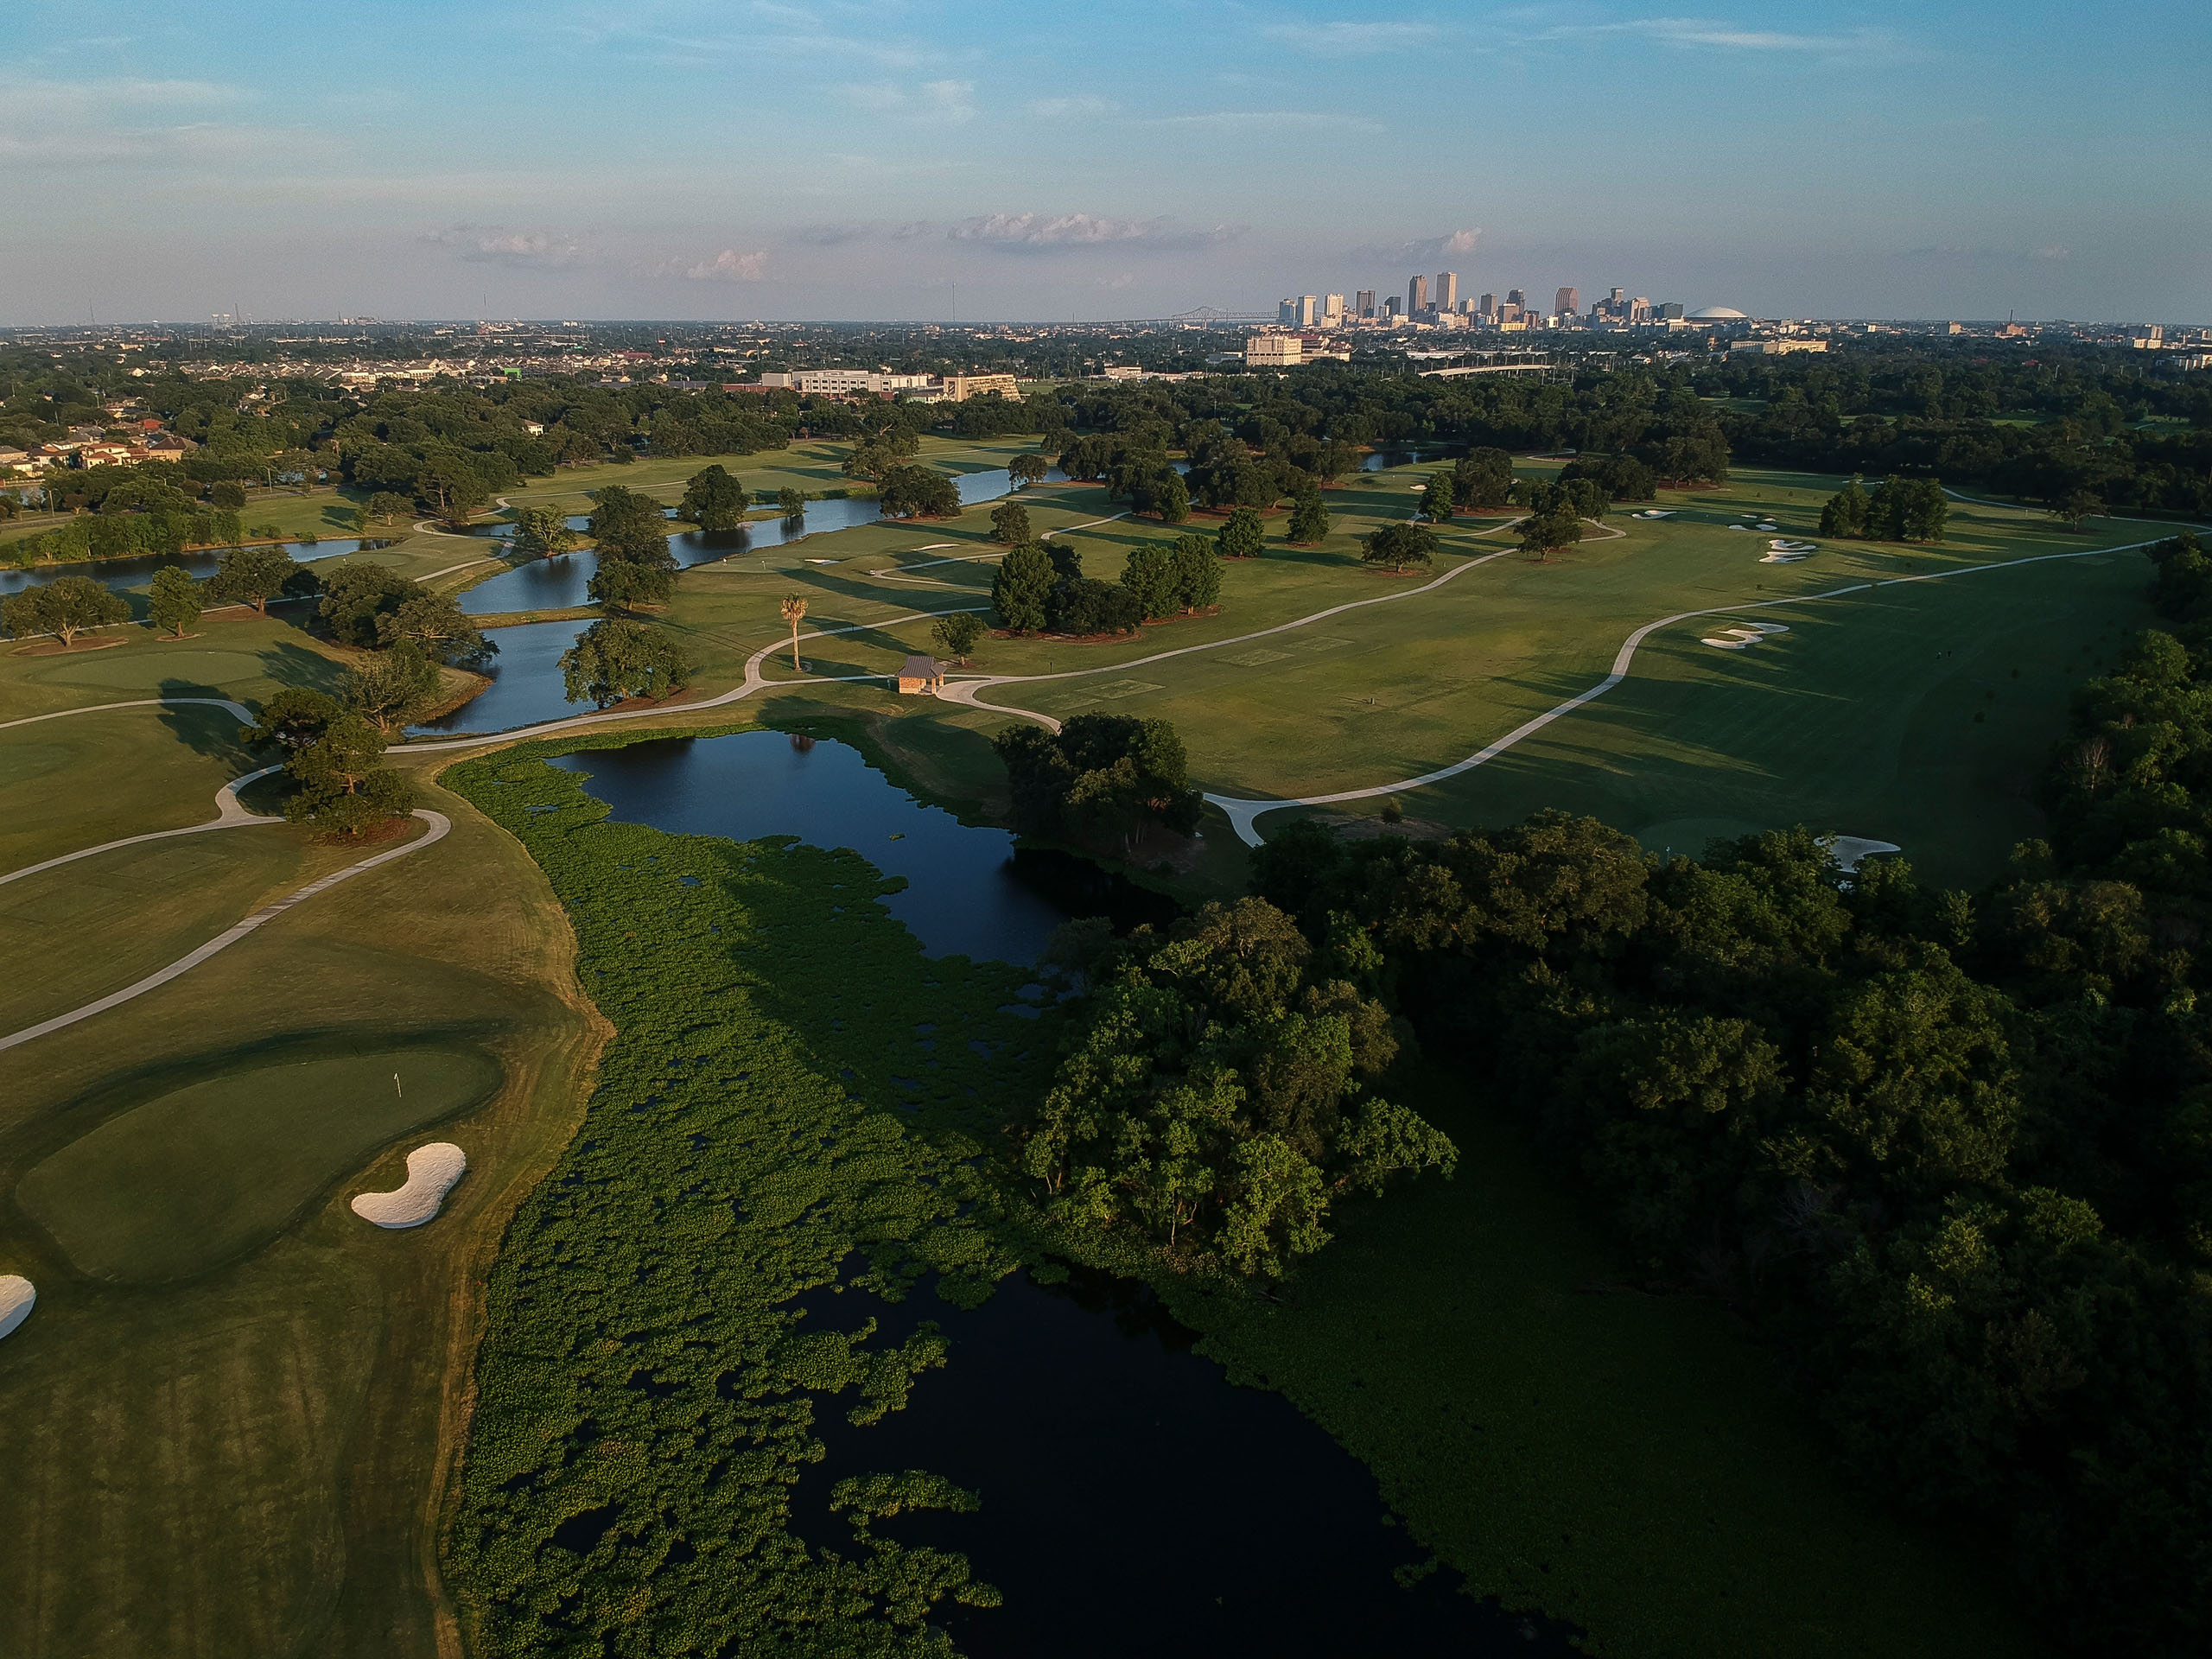 Proximity to downtown is one of the biggest assets of the Bayou Oaks Course at City Park. The locals say that when the popular New Orleans Jazz Fest is in full swing, they can hear the music from the course. Photo by Ryan Young